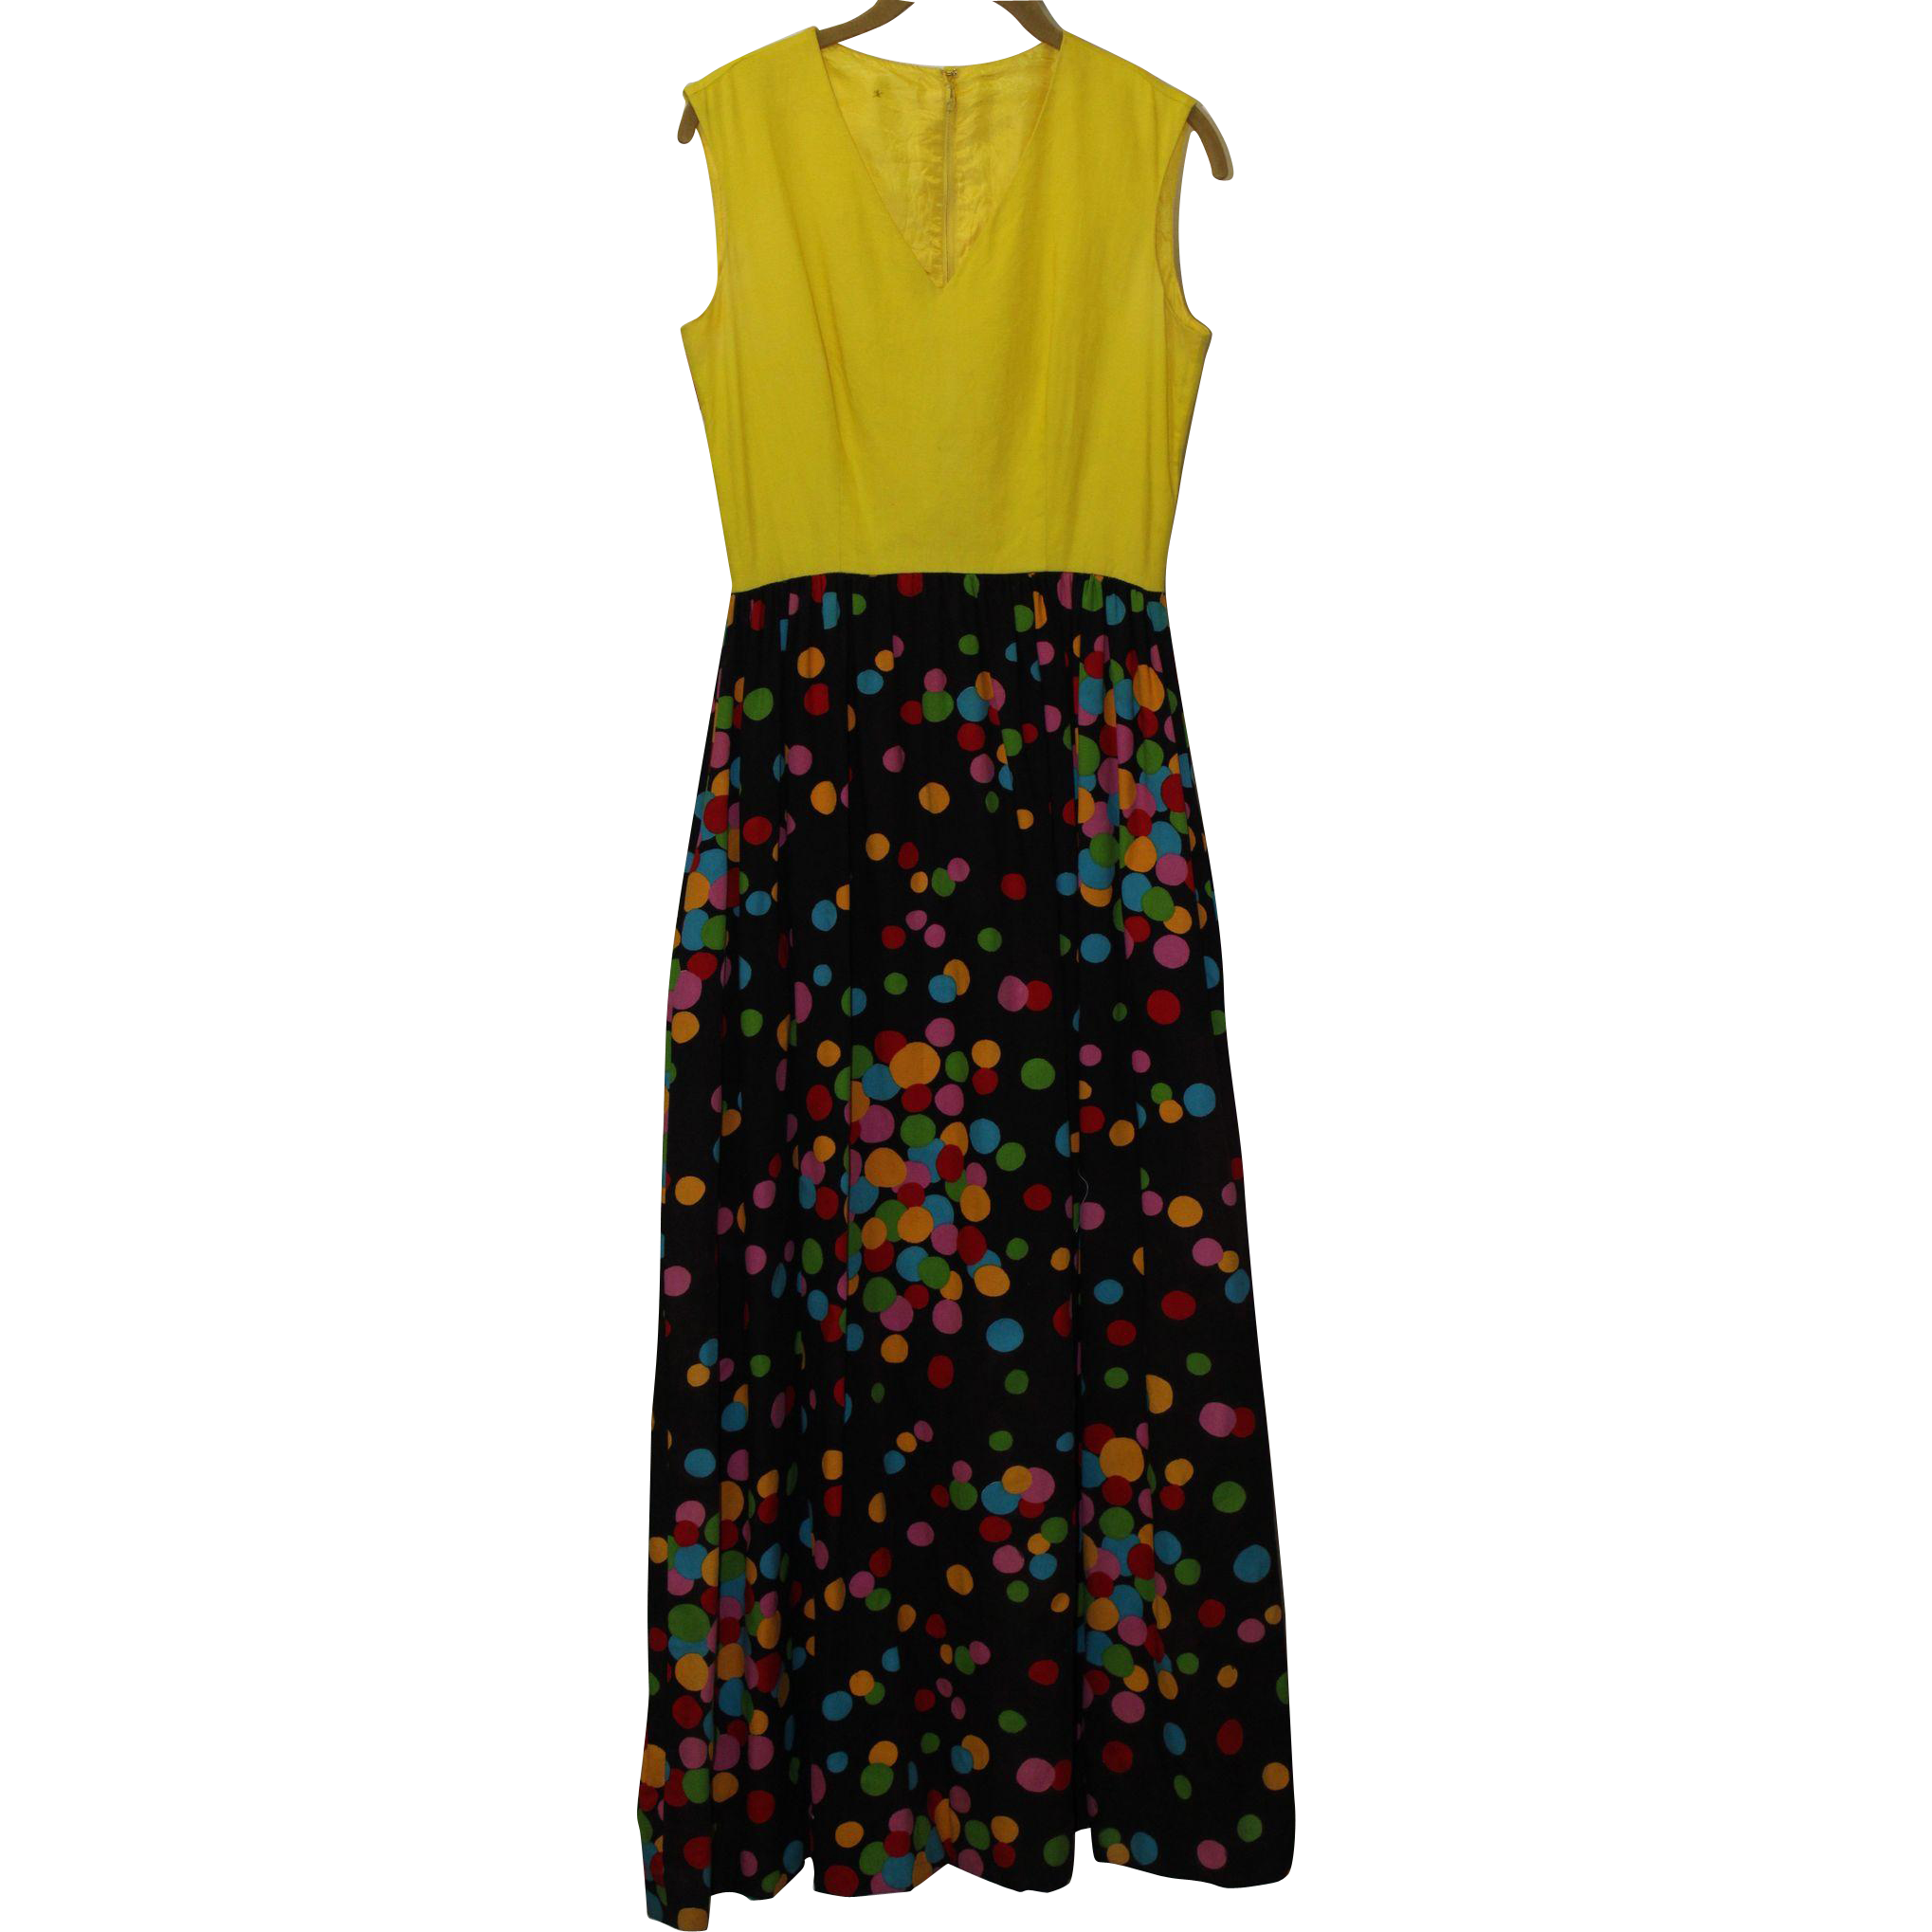 1970's Handmade All Cotton Multi-Colord Maxi Dress with a Polka Dot Motif on Skirt